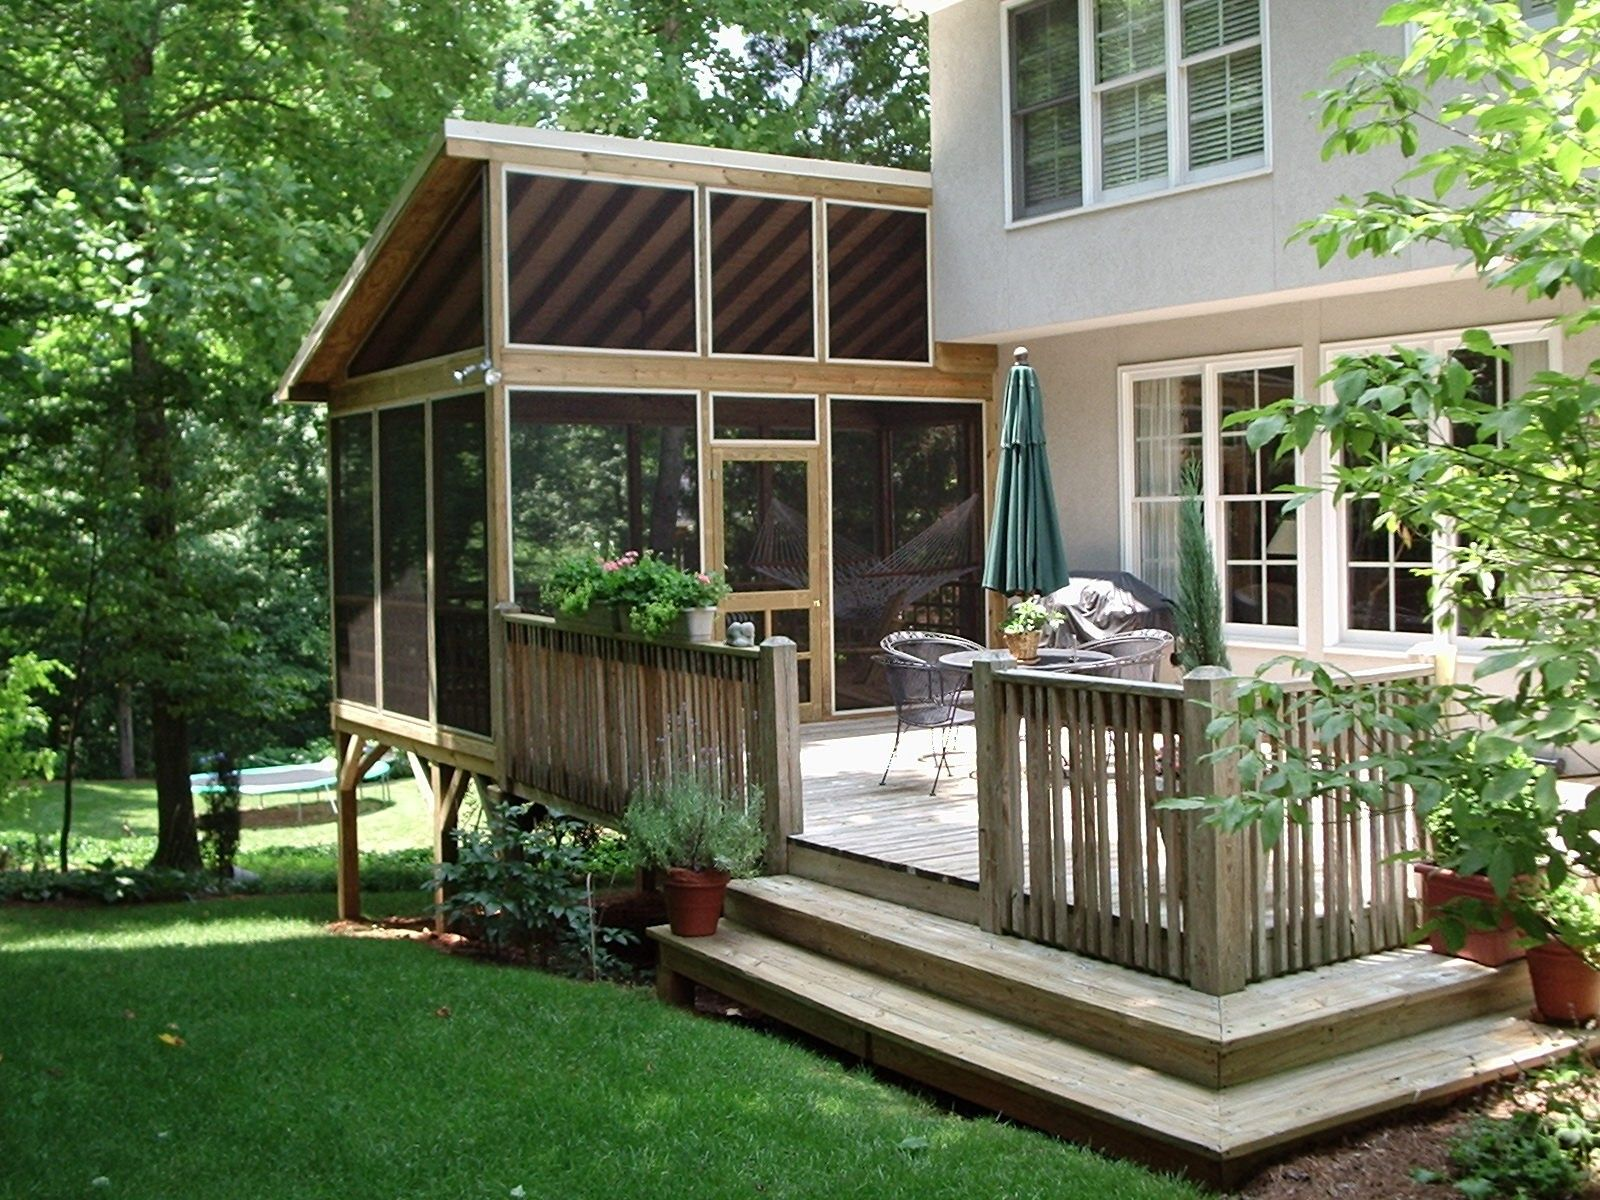 Metal screen porch attached to house - Find This Pin And More On House Decoration Screened Porch